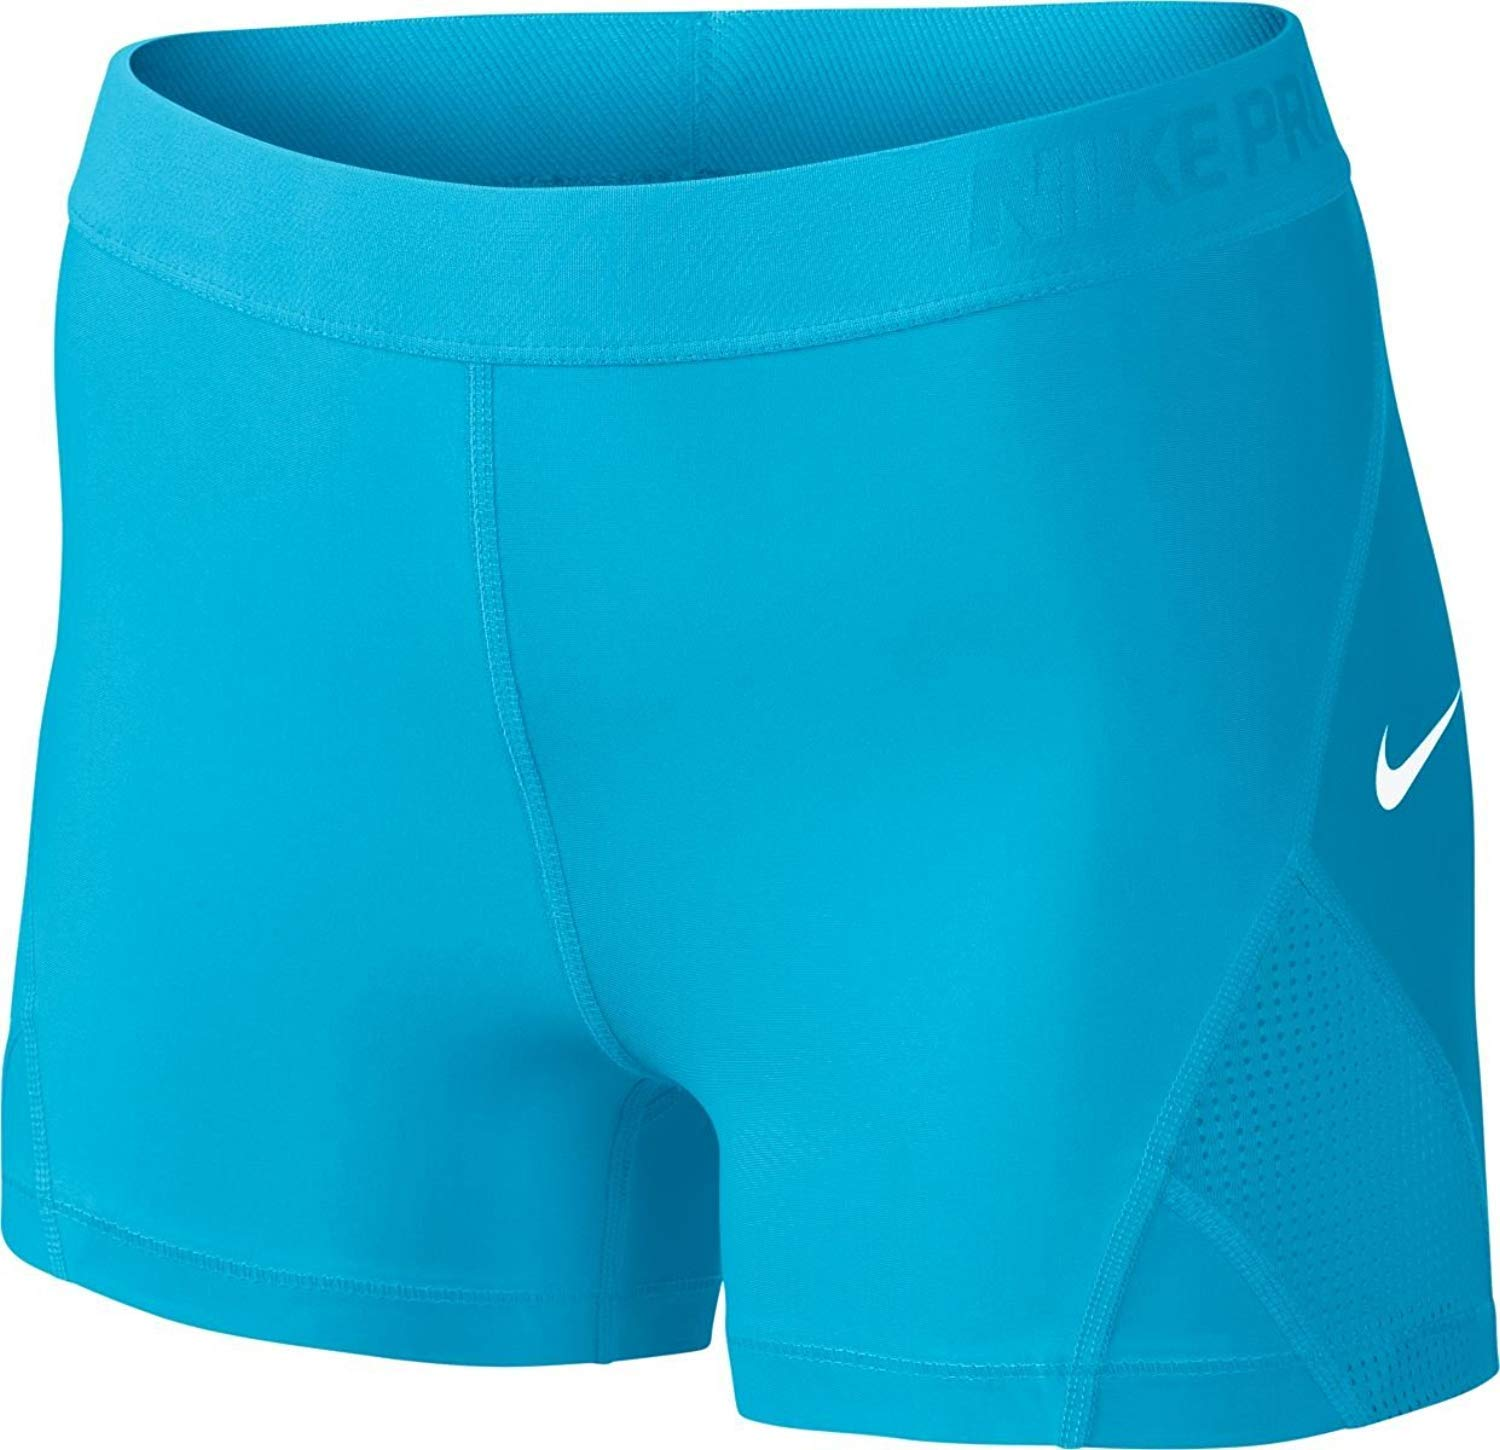 Nike Women's Pro 3'' Training Shorts (Medium, Blue(831982-447)/White)